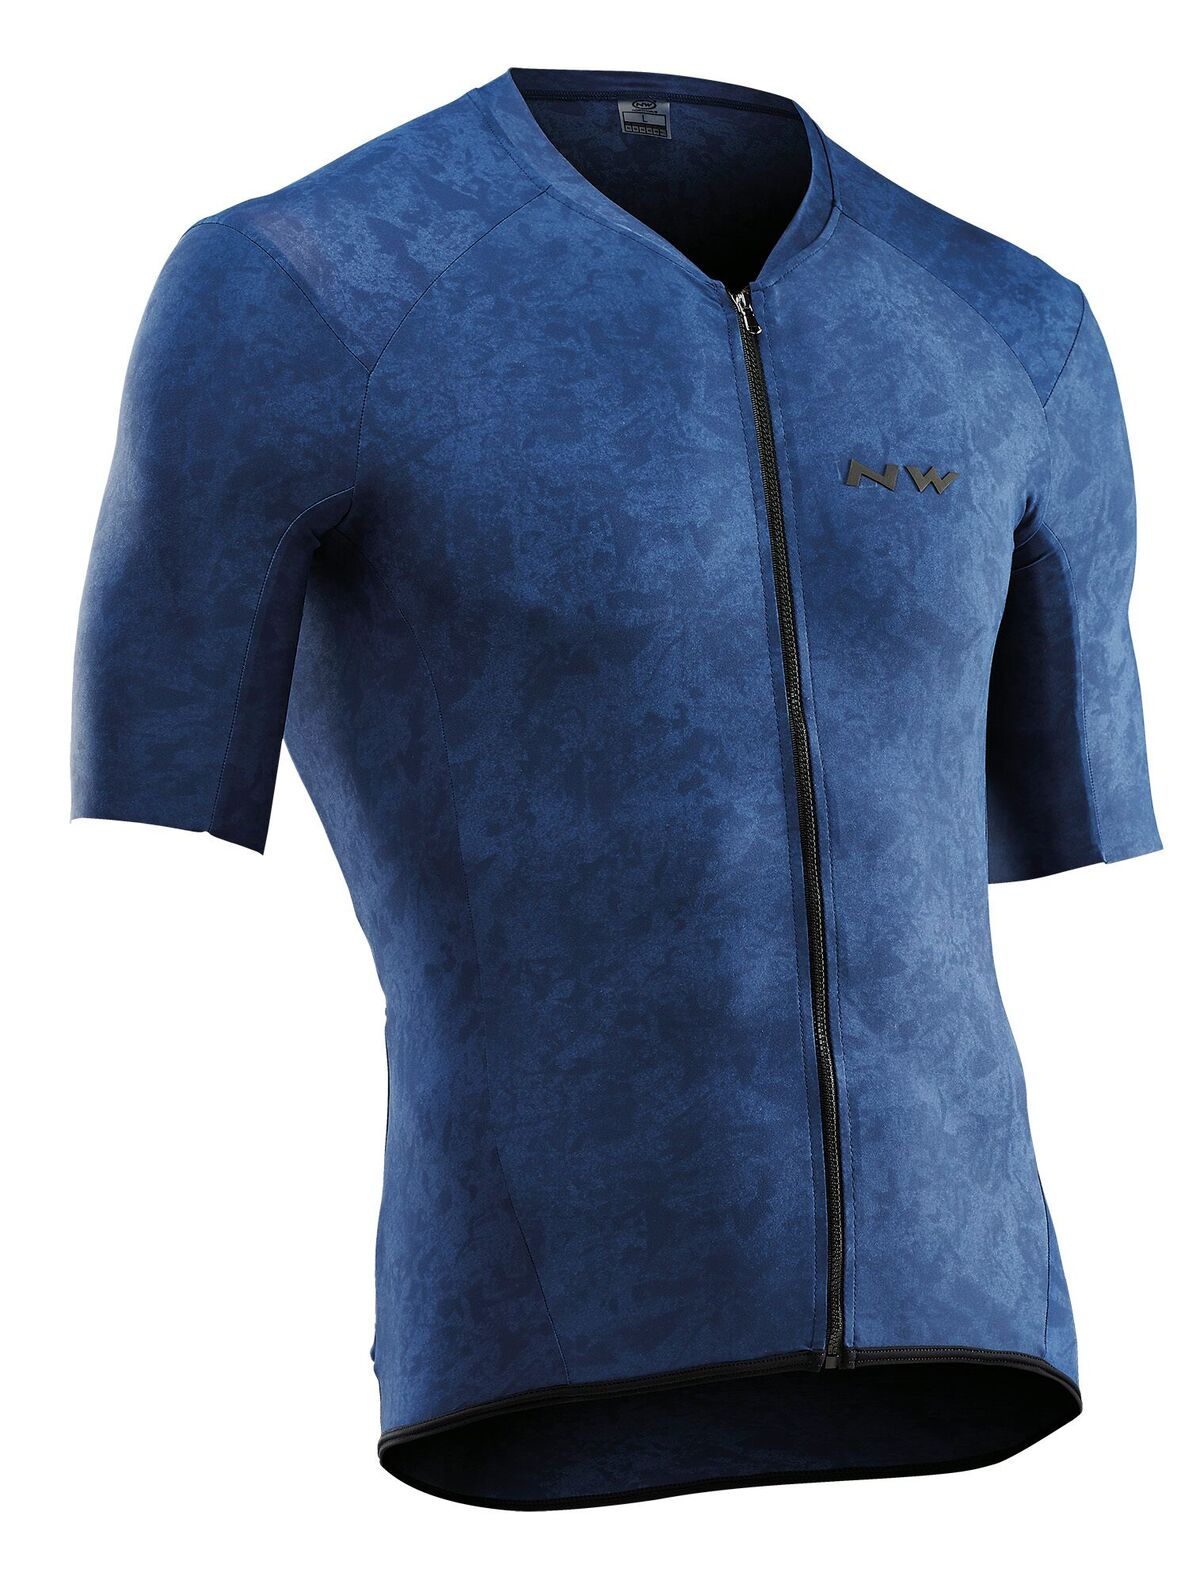 Maglia Ciclismo Maniche Corte Northwave Sense Jersey Short Sleeves BLUE